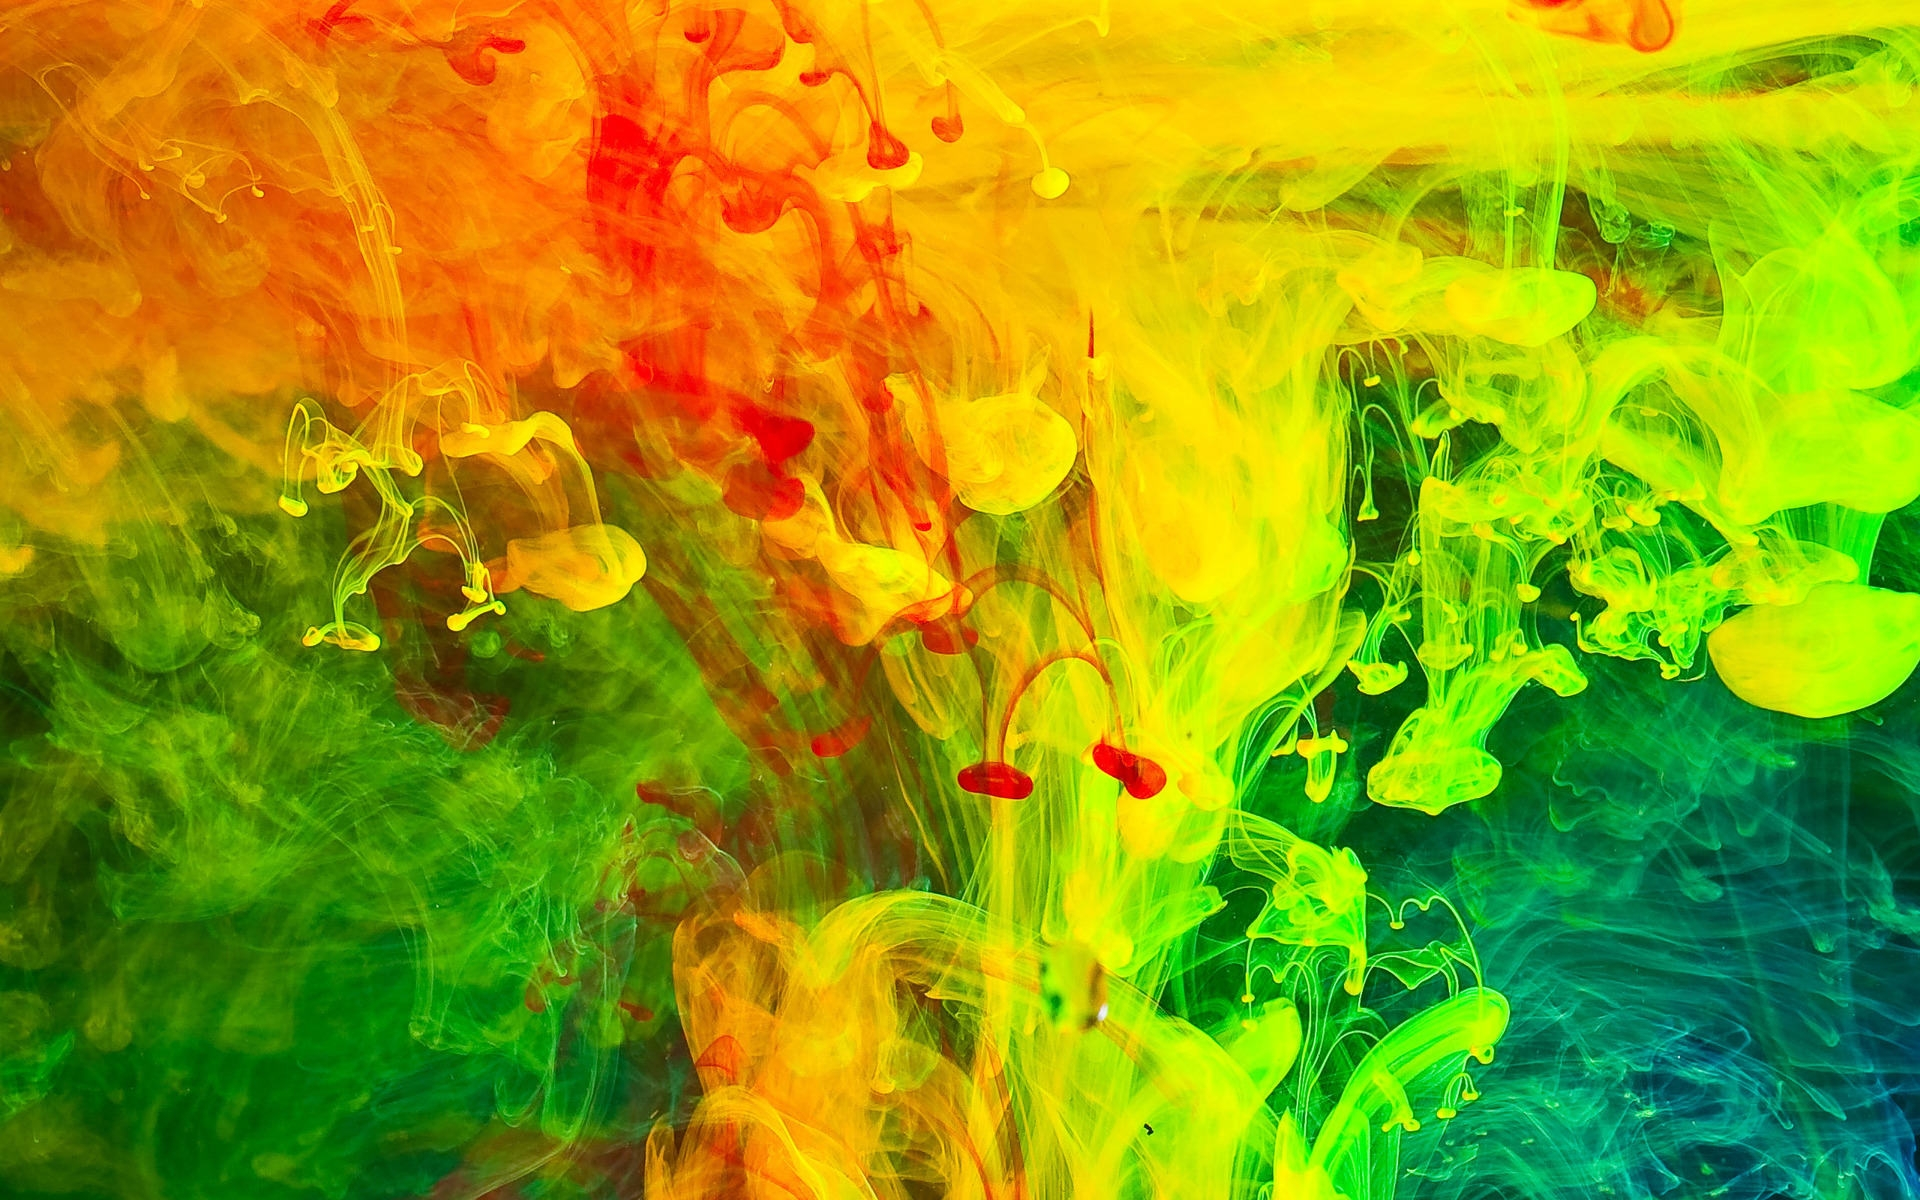 Colorful Art Desktop Backgrounds